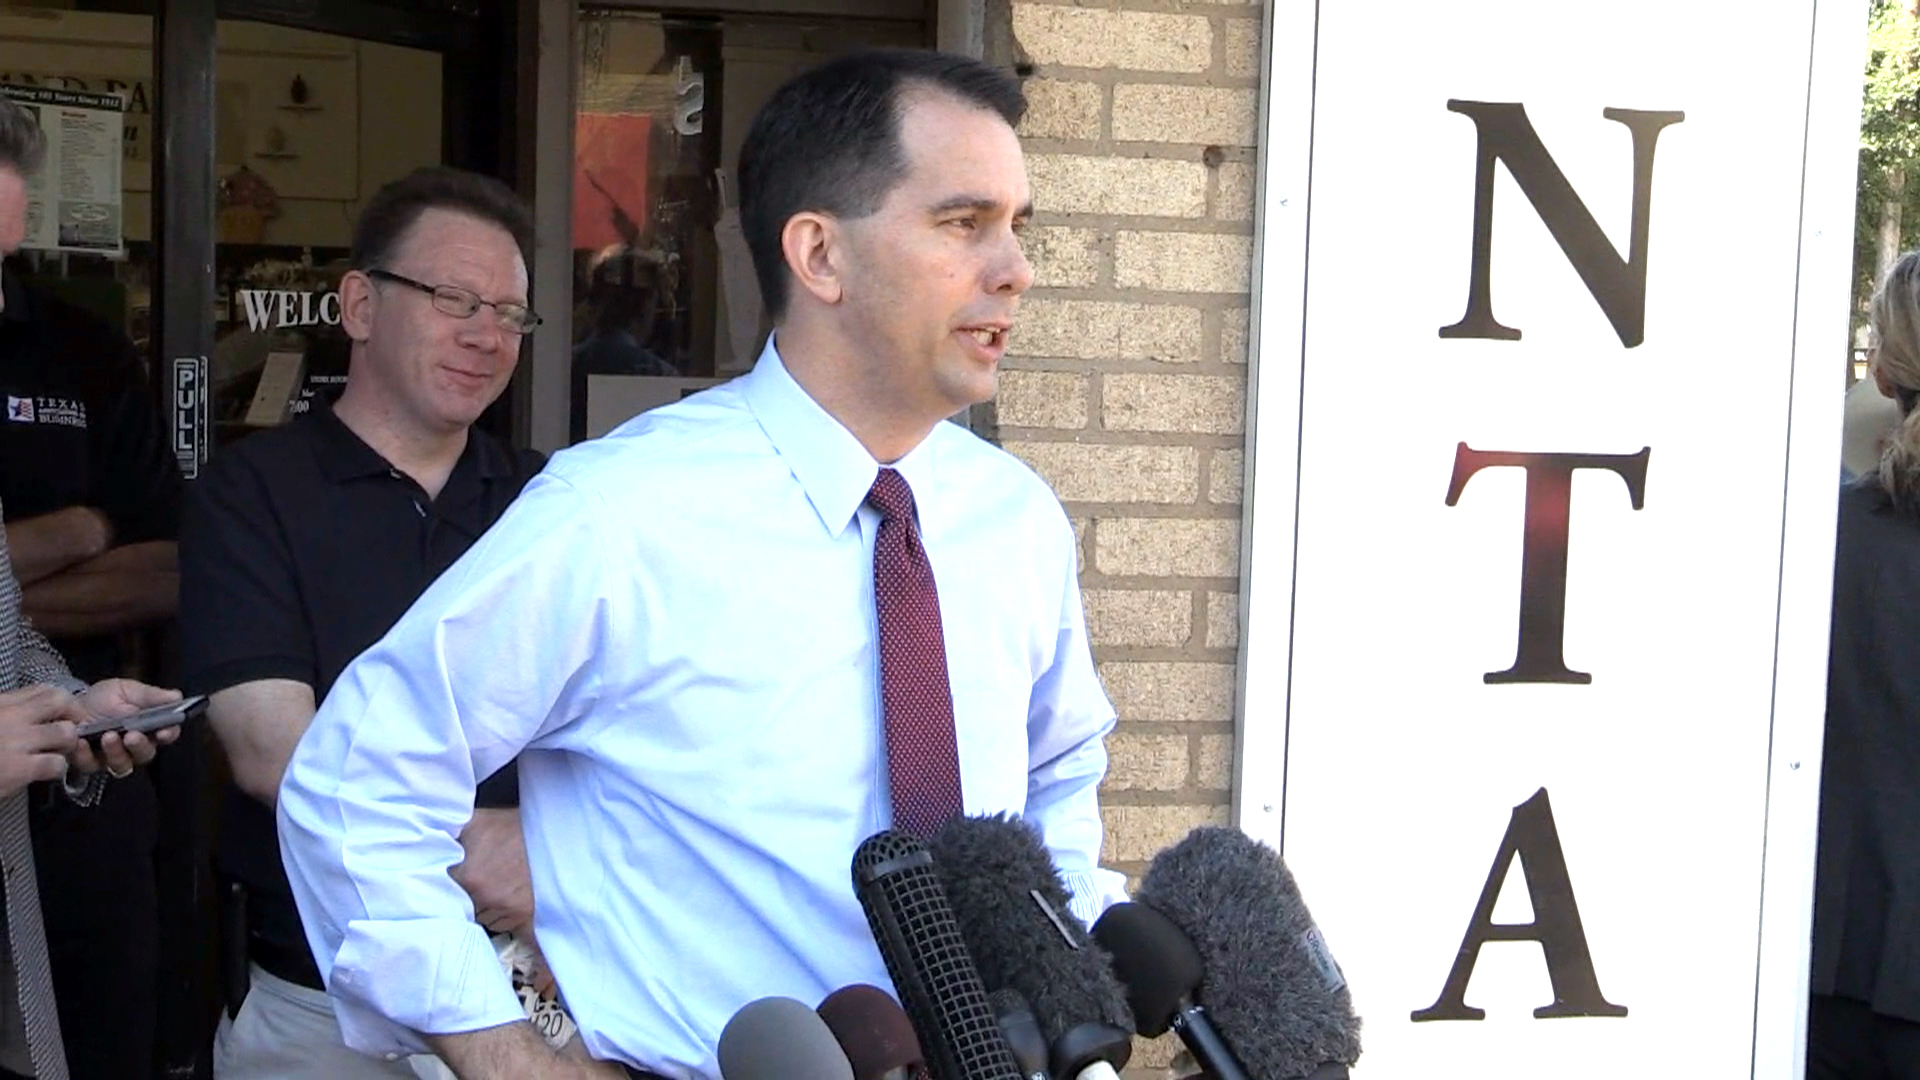 Walker Shrugs Off Trump Talk in Texas